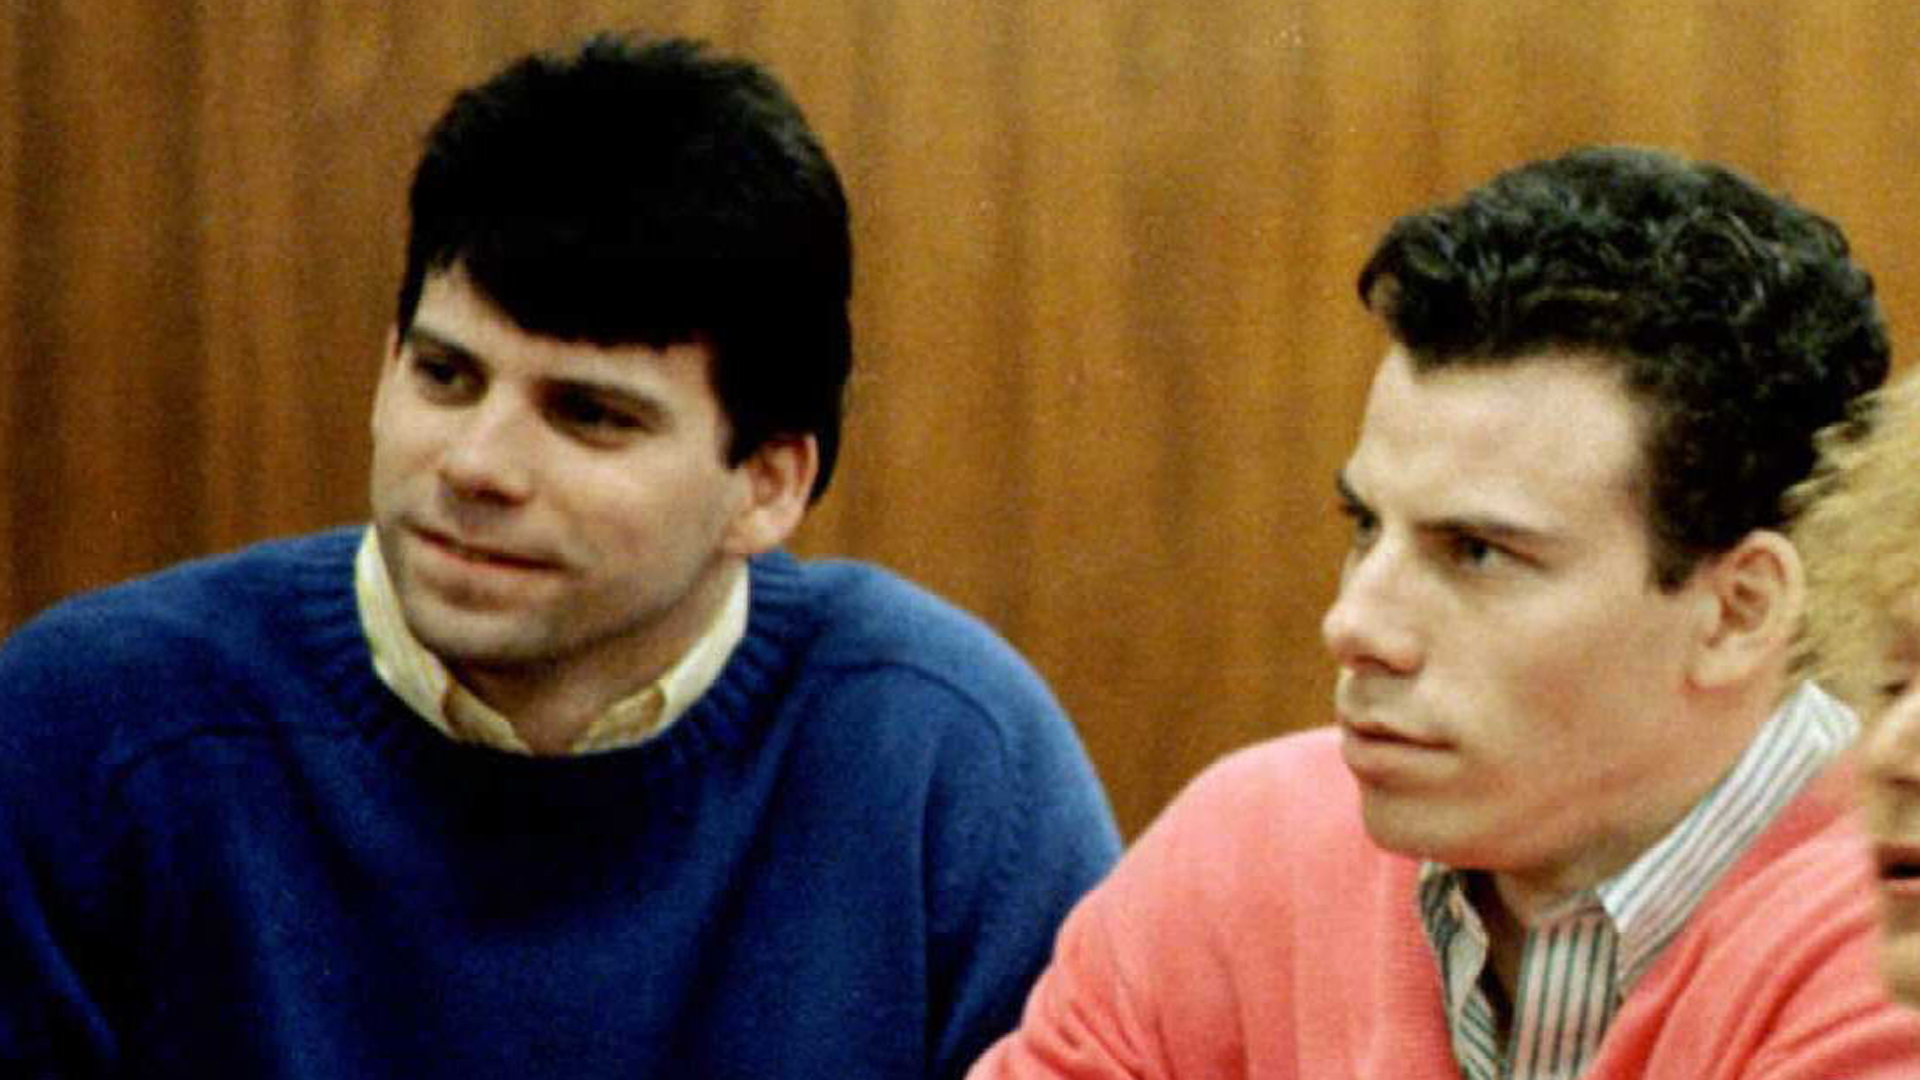 This 1992 file photo shows double murder defendants Erik and Lyle Menendez, from left to right, during a court appearance in Los Angeles. (Credit: MIKE NELSON/AFP/Getty Images)